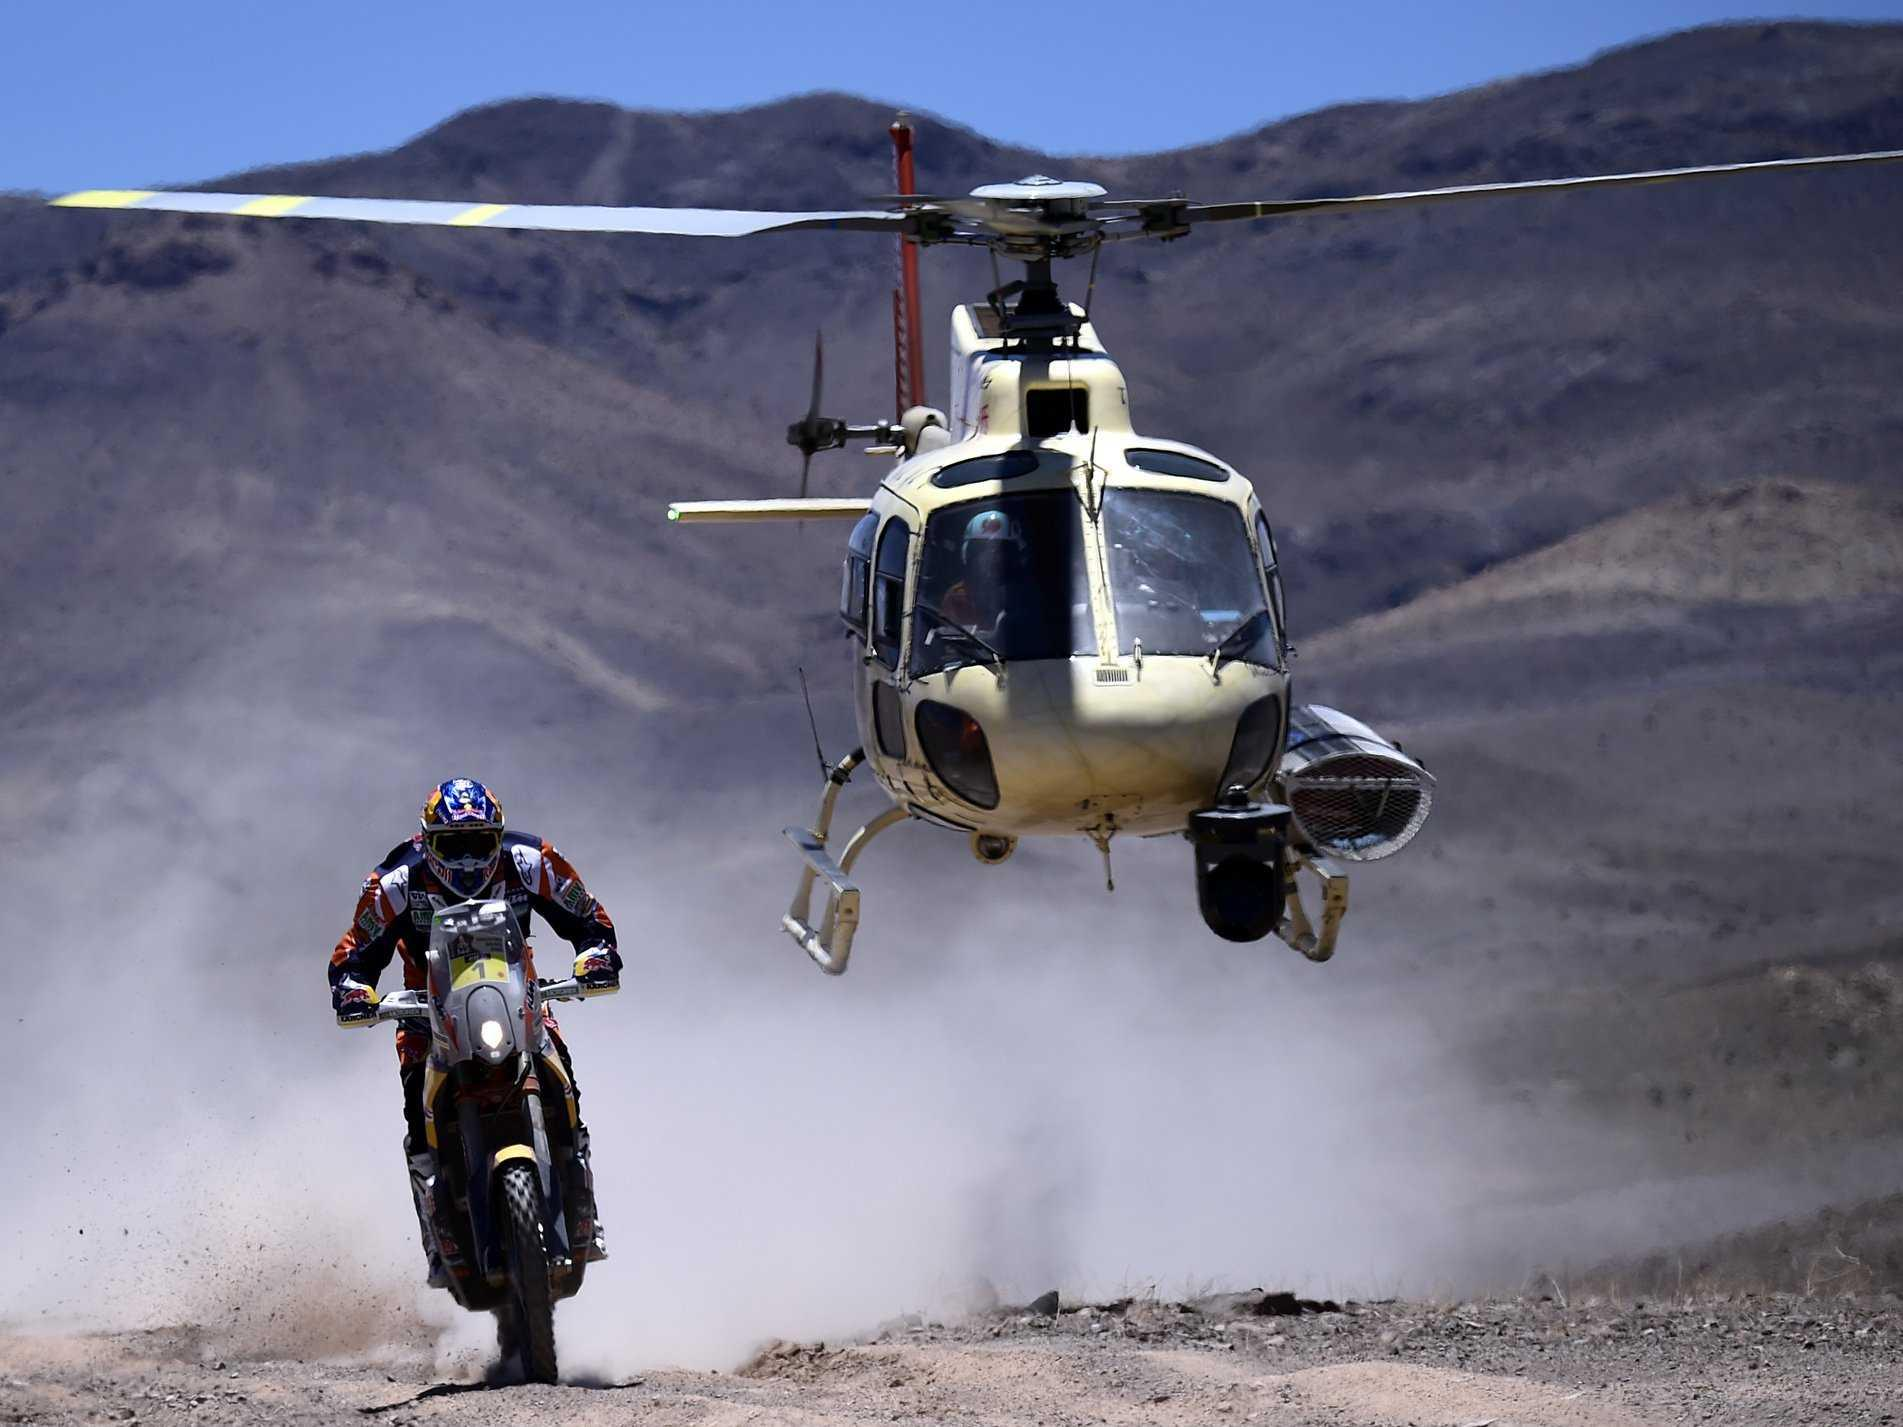 32 Jaw-Dropping Photos From the 2015 Dakar Rally